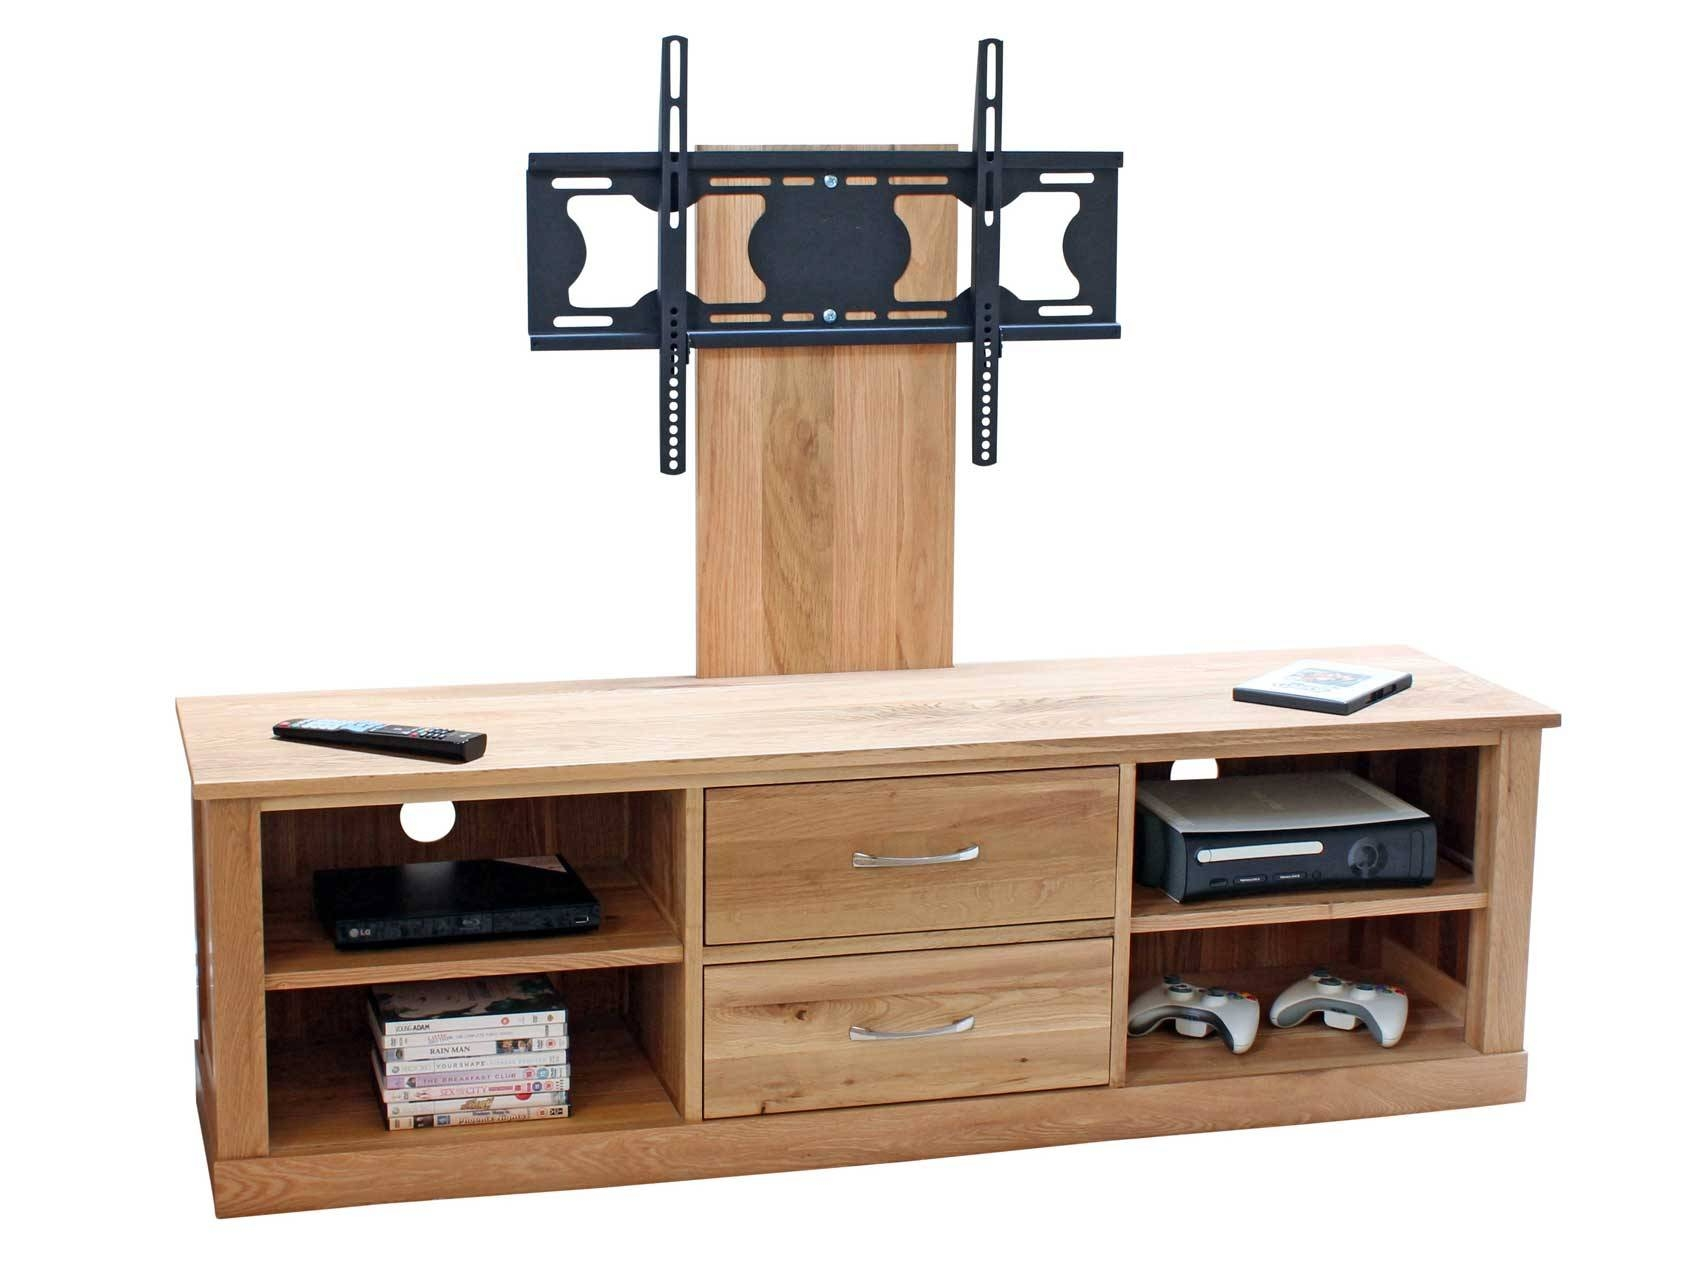 Oak Wooden Tv Stand With Mount For Flat Screen Of 14 Gorgeous throughout Wooden Tv Stands For Flat Screens (Image 8 of 15)